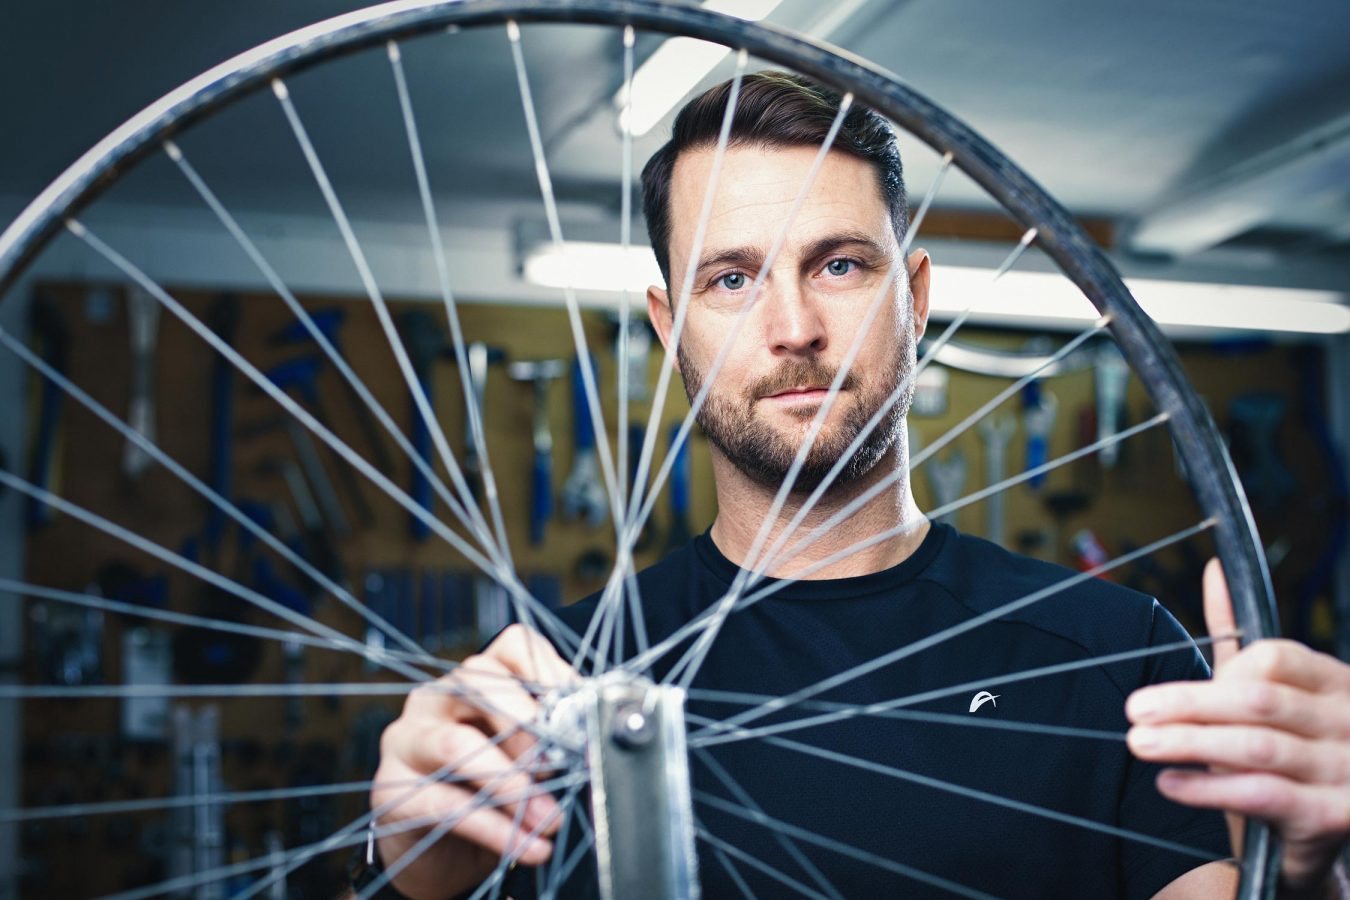 portrait-advertising-photography-bikeshop-man-cambridge